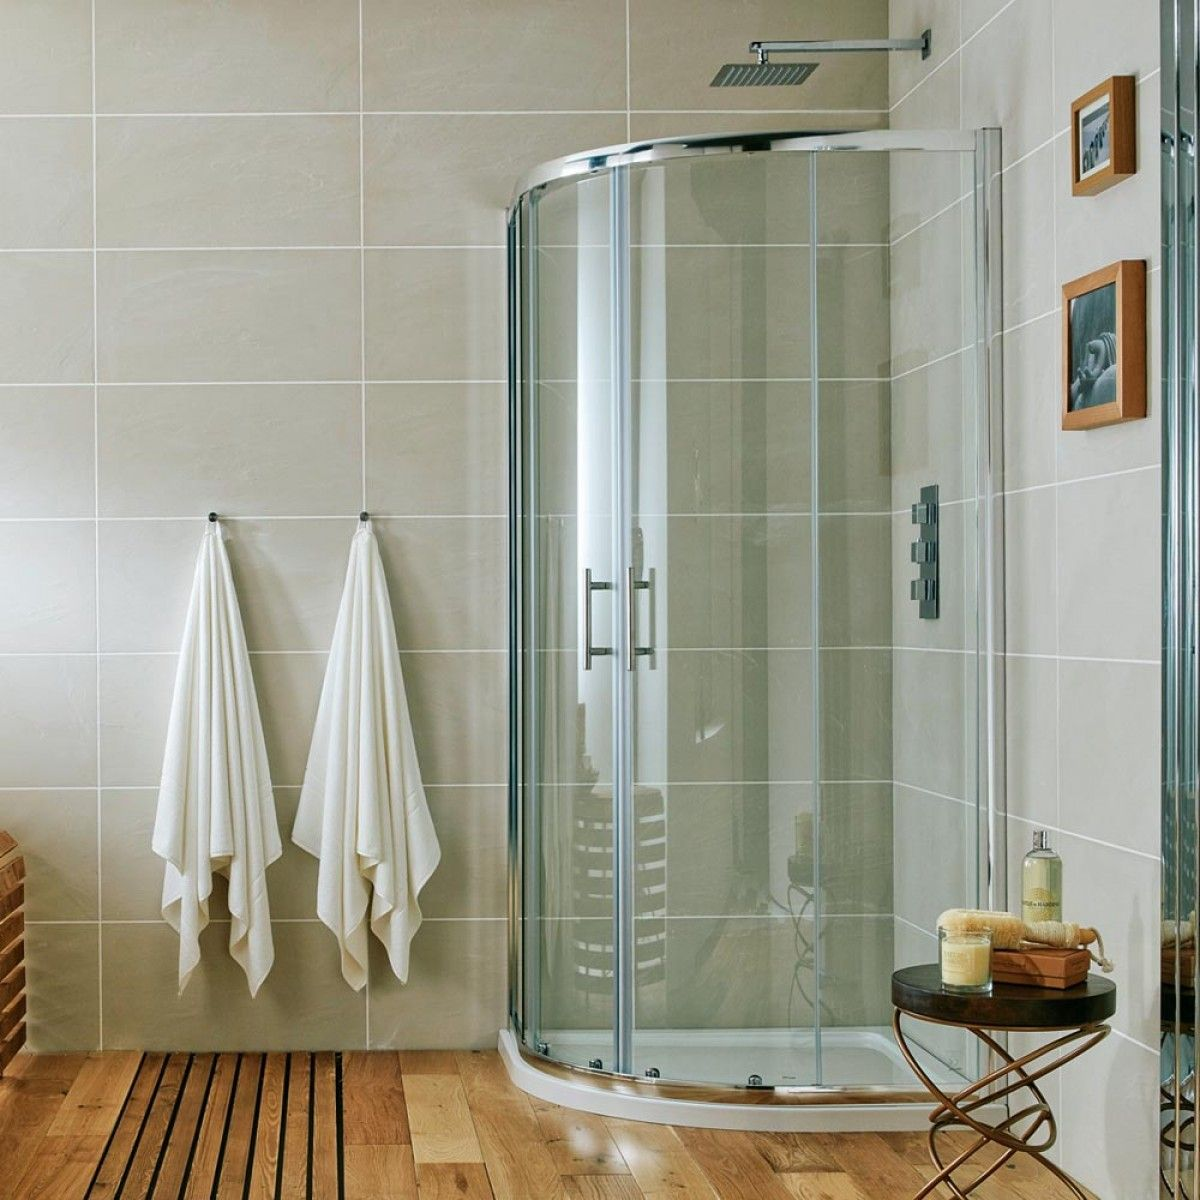 Harbour i easy clean mm door quadrant shower enclosure